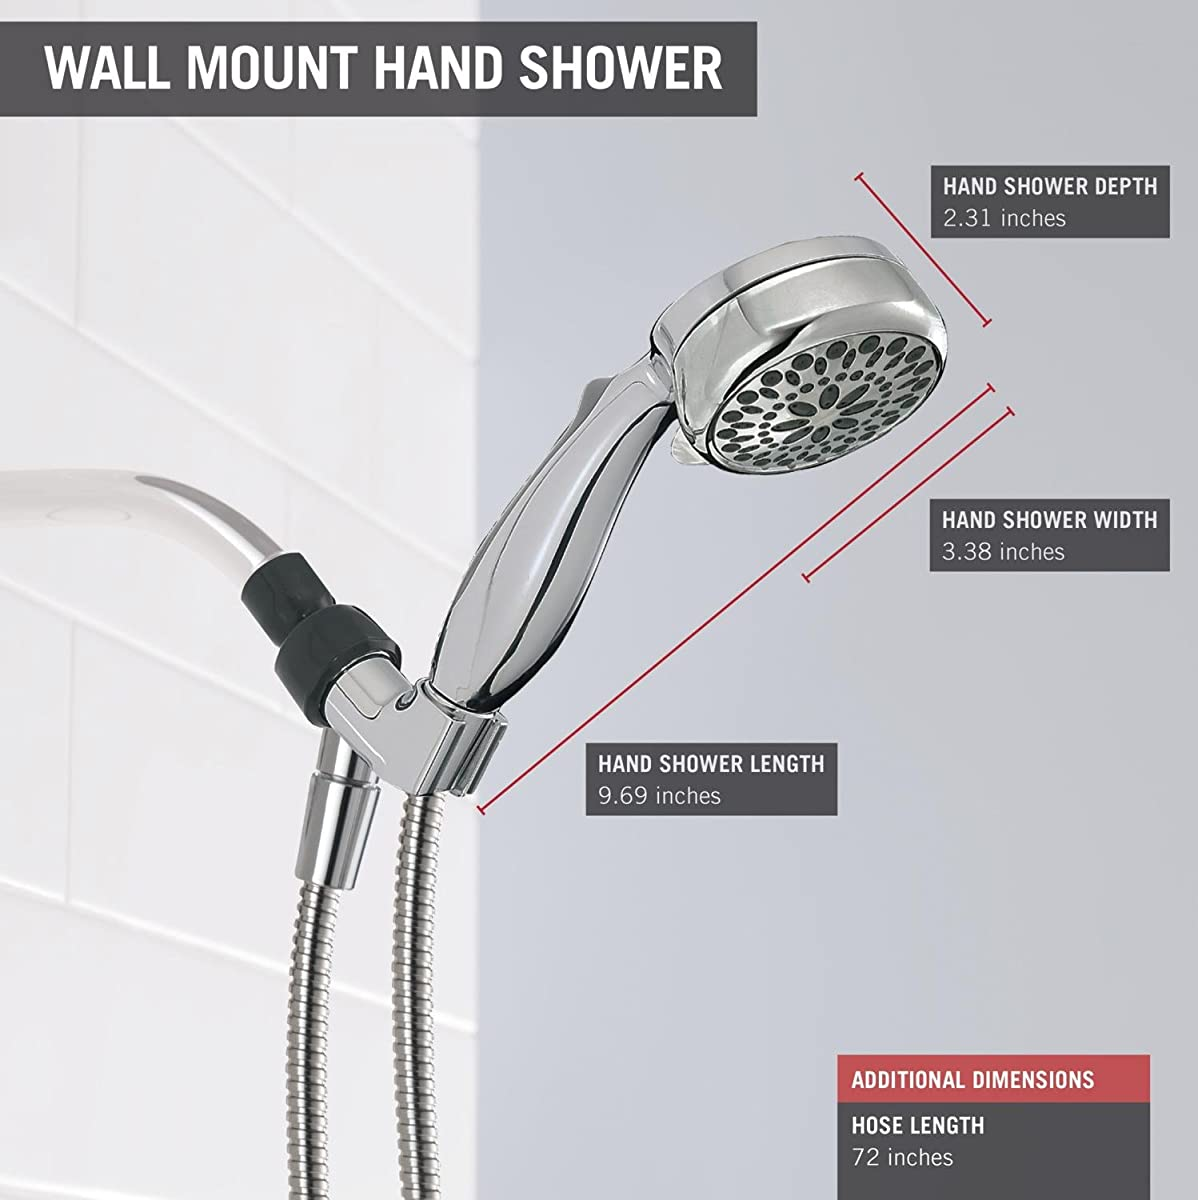 Delta Faucet 75700 Universal Showering Components 7-Setting Handshower, Chrome